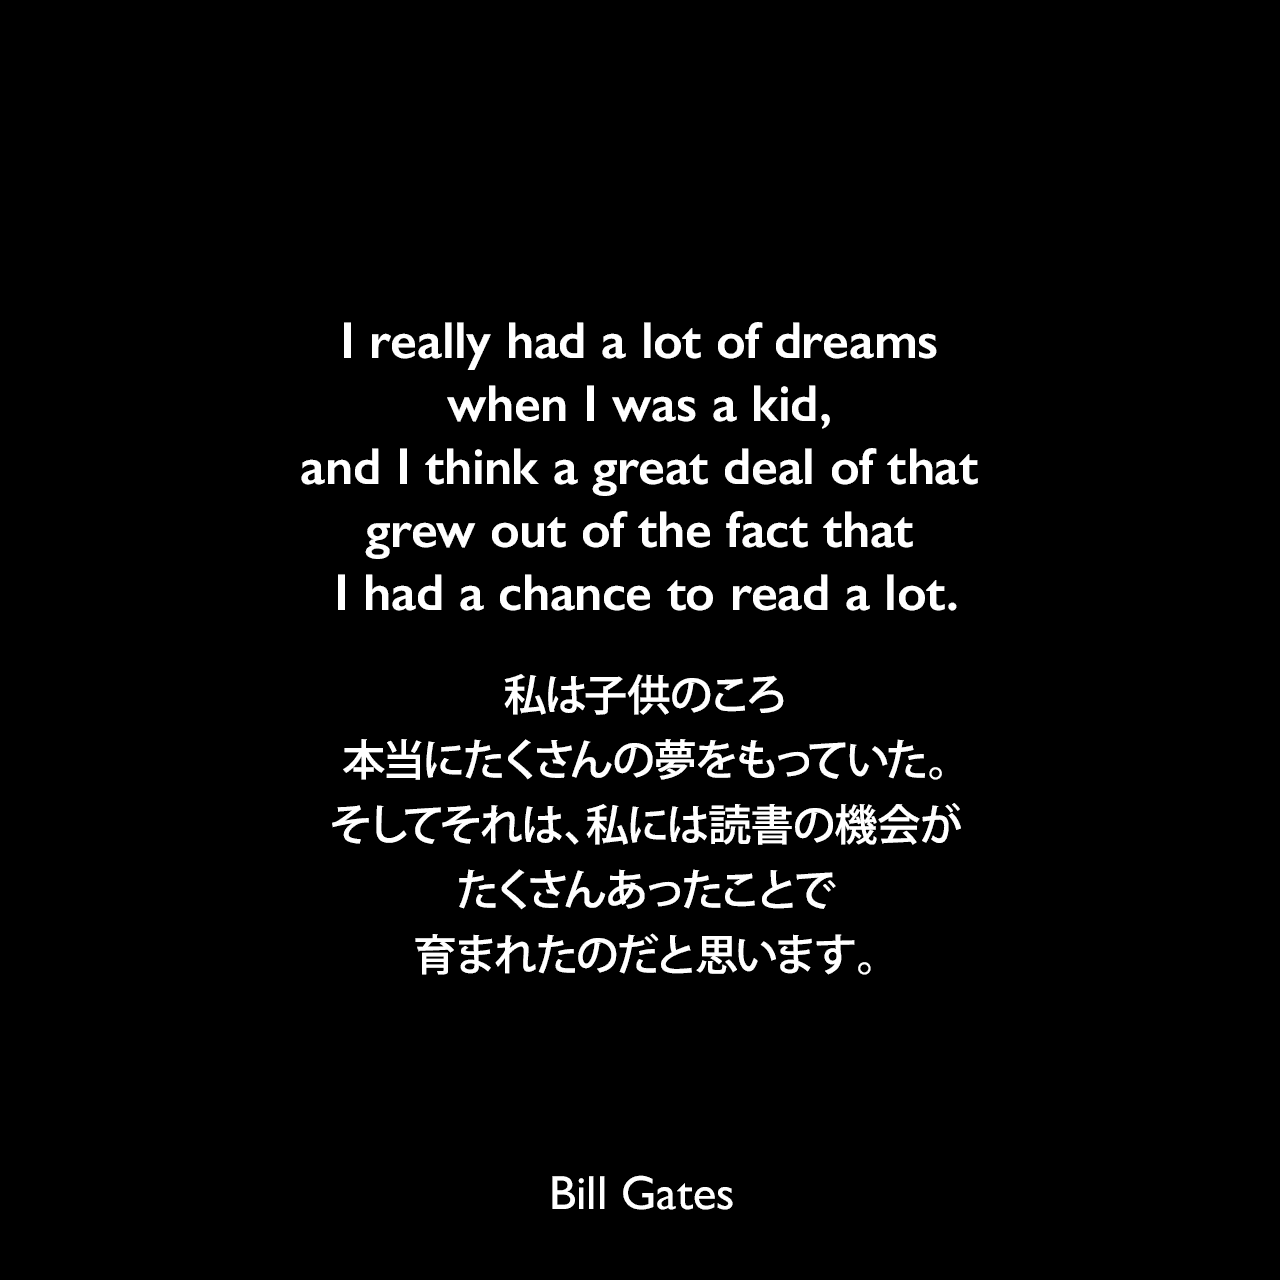 I really had a lot of dreams when I was a kid, and I think a great deal of that grew out of the fact that I had a chance to read a lot.私は子供のころ本当にたくさんの夢をもっていた。そしてそれは、私には読書の機会がたくさんあったことで育まれたのだと思います。Bill Gates